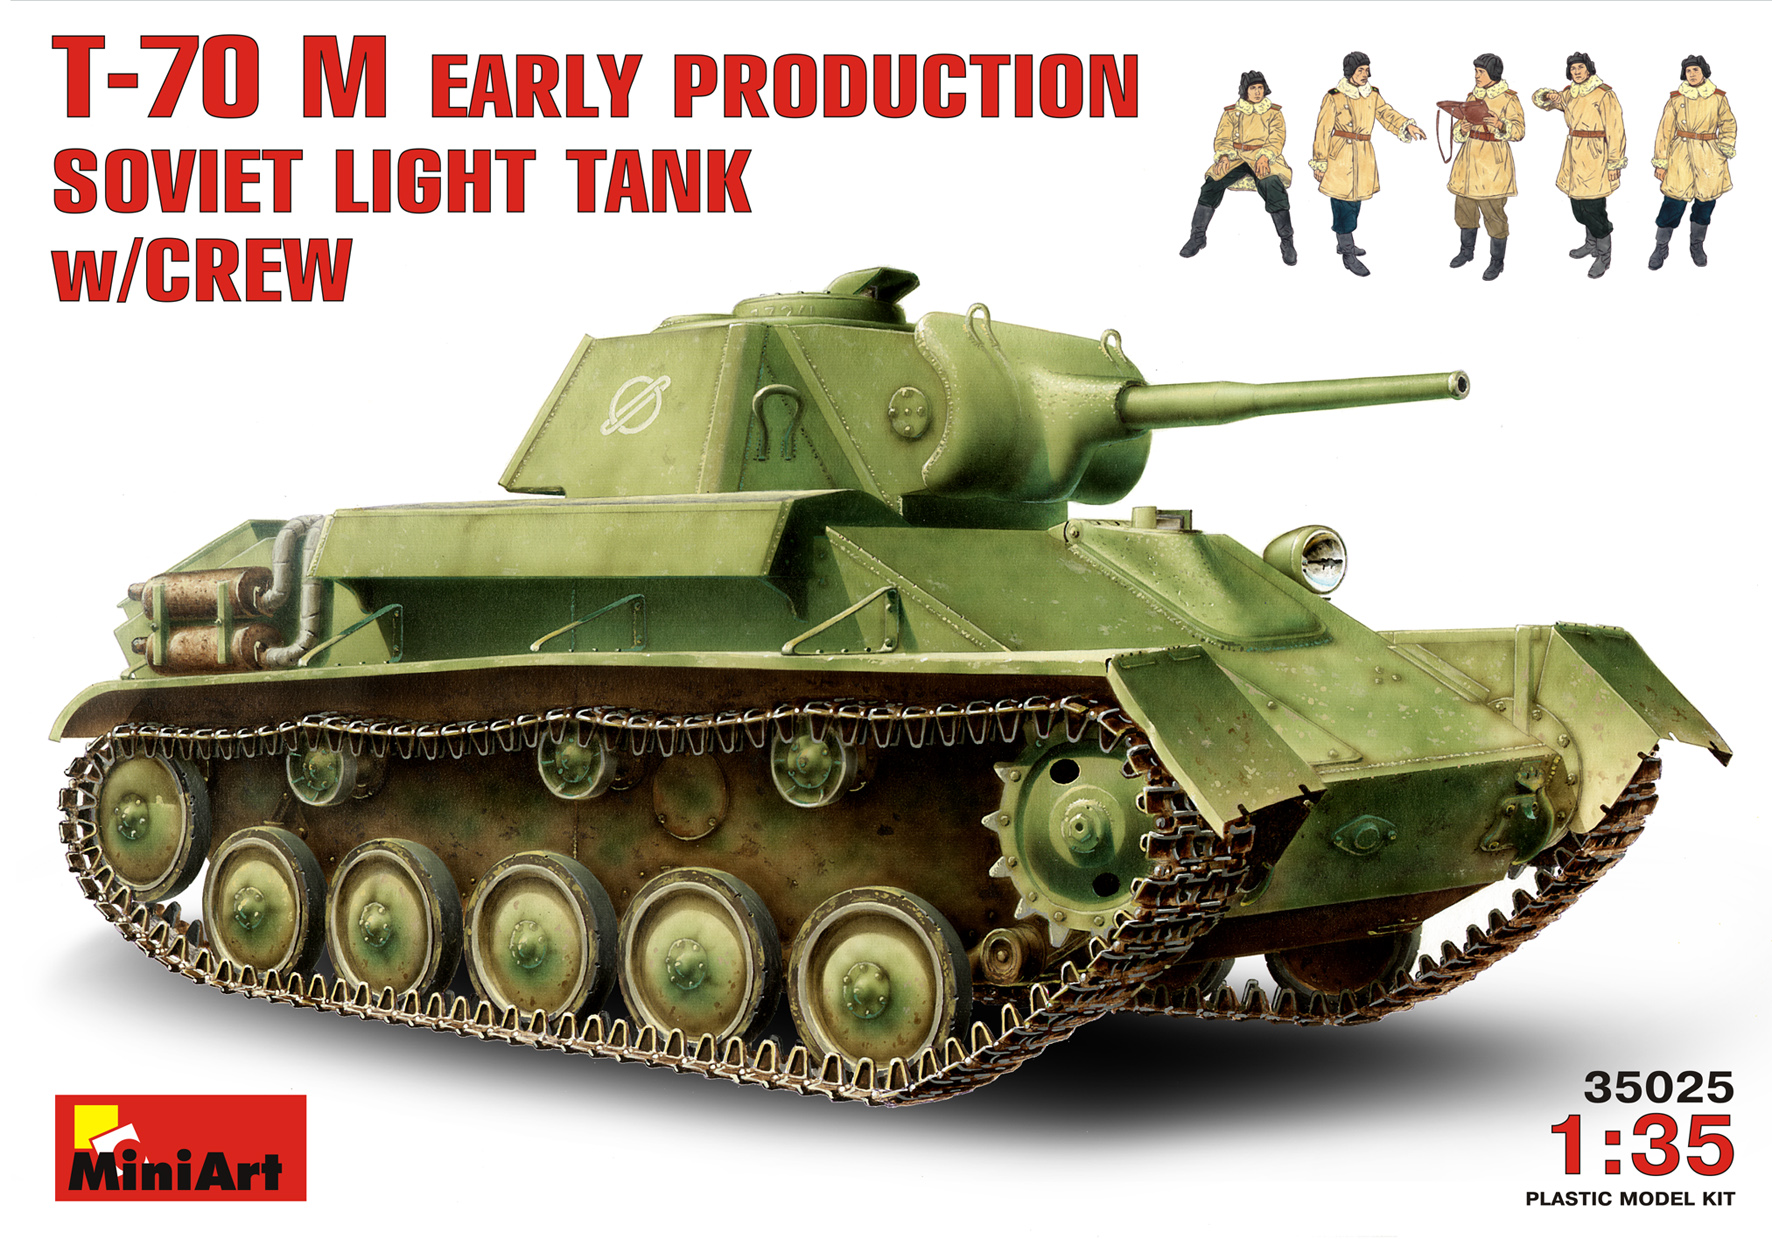 T-70M EARLY PRODUCTION SOVIET LIGHT TANK w/CREW